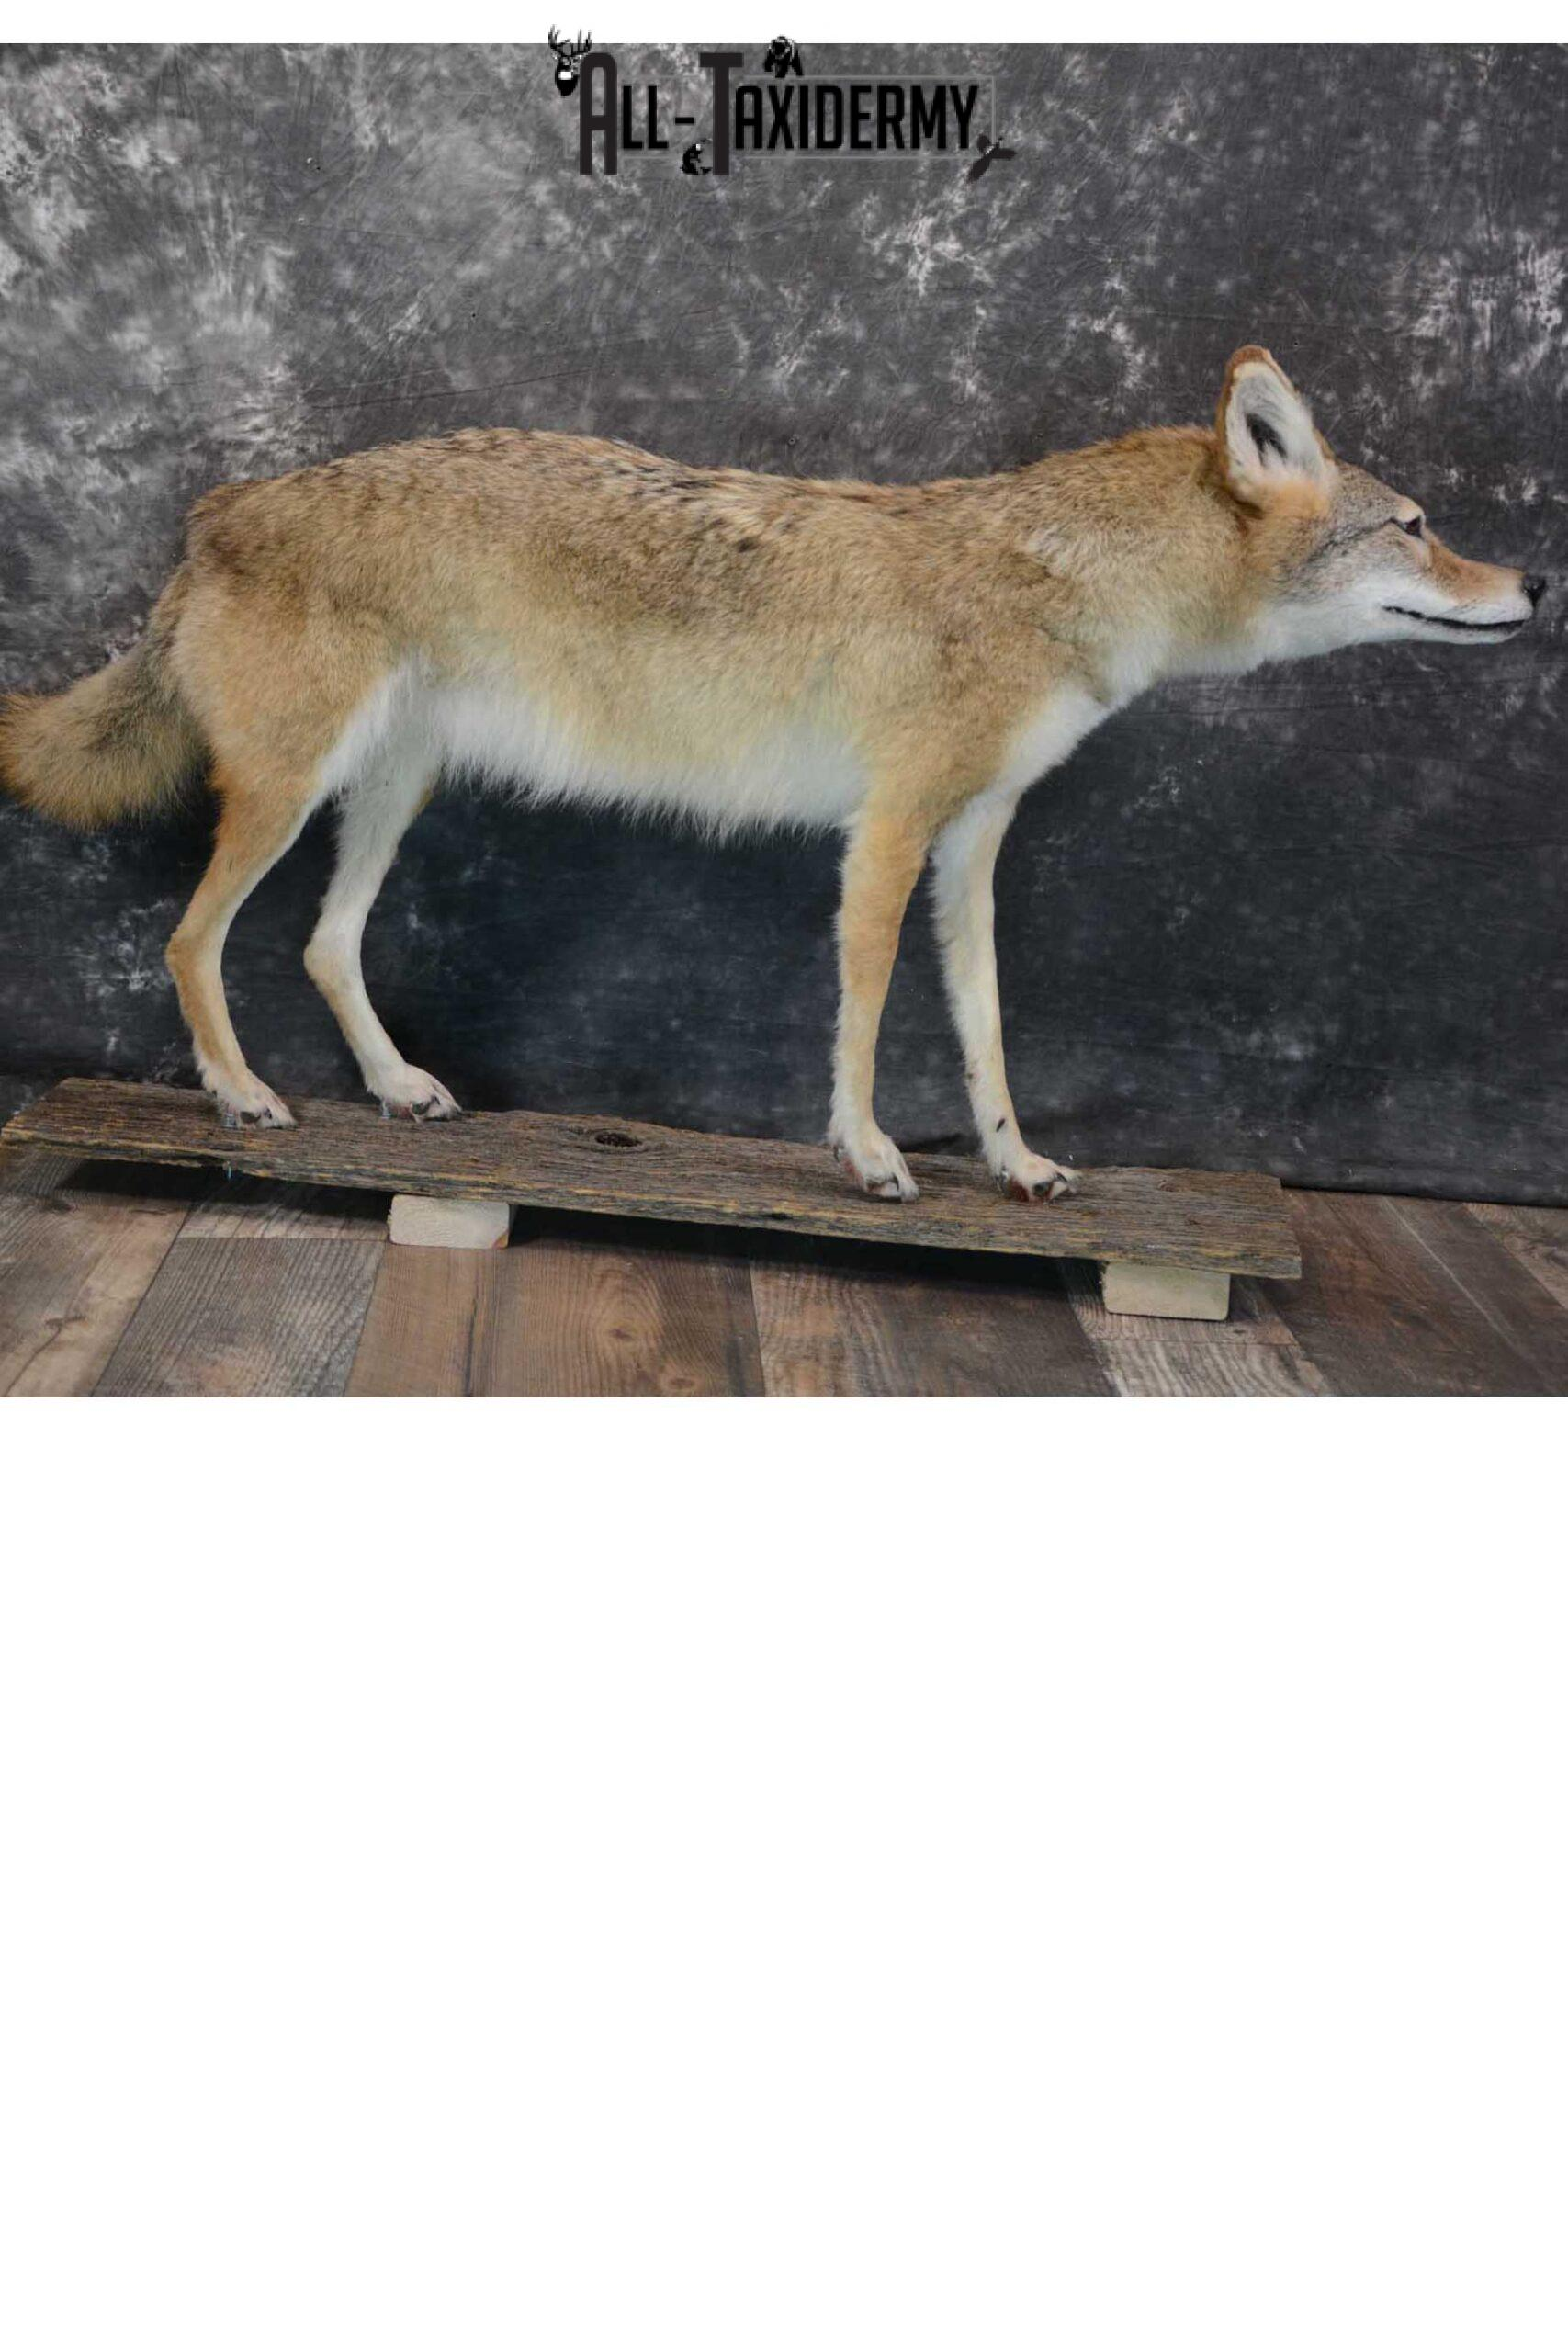 Full body coyote taxidermy mount for sale SKU 1660